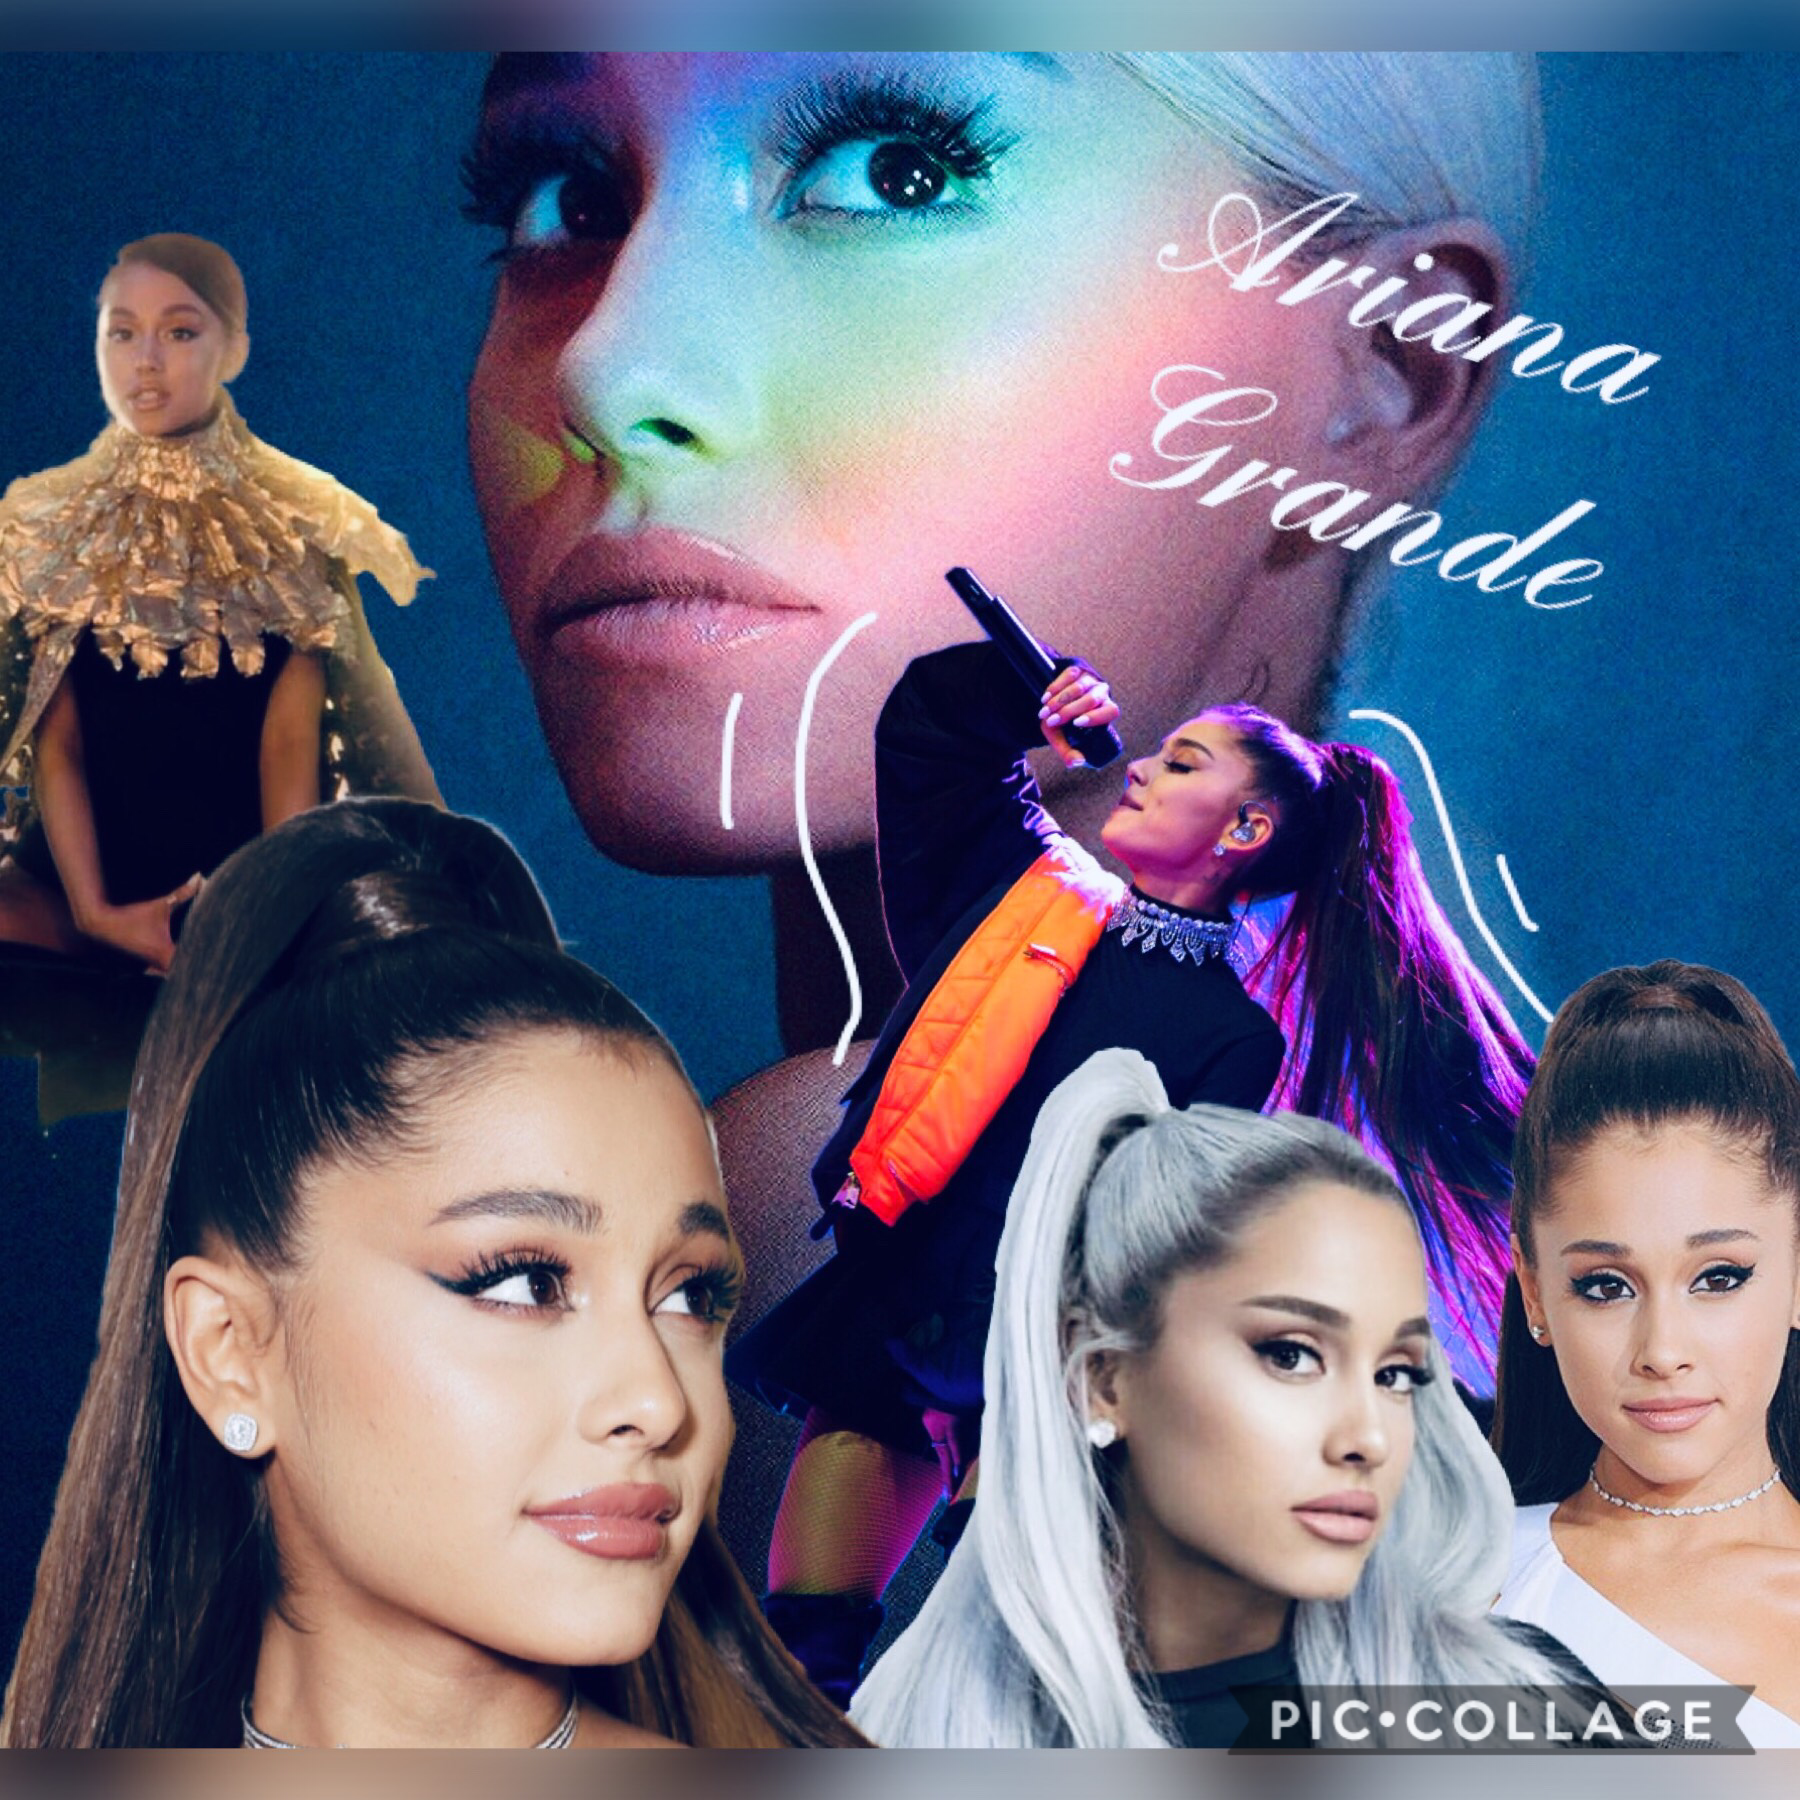 🖤 TAP 🖤  I'm so sorry to all my followers for not posting collages in such a long time. I moved, was busy with school work and wanted to take a break from it. Here is an Ariana Grande's Collage for all arianators.